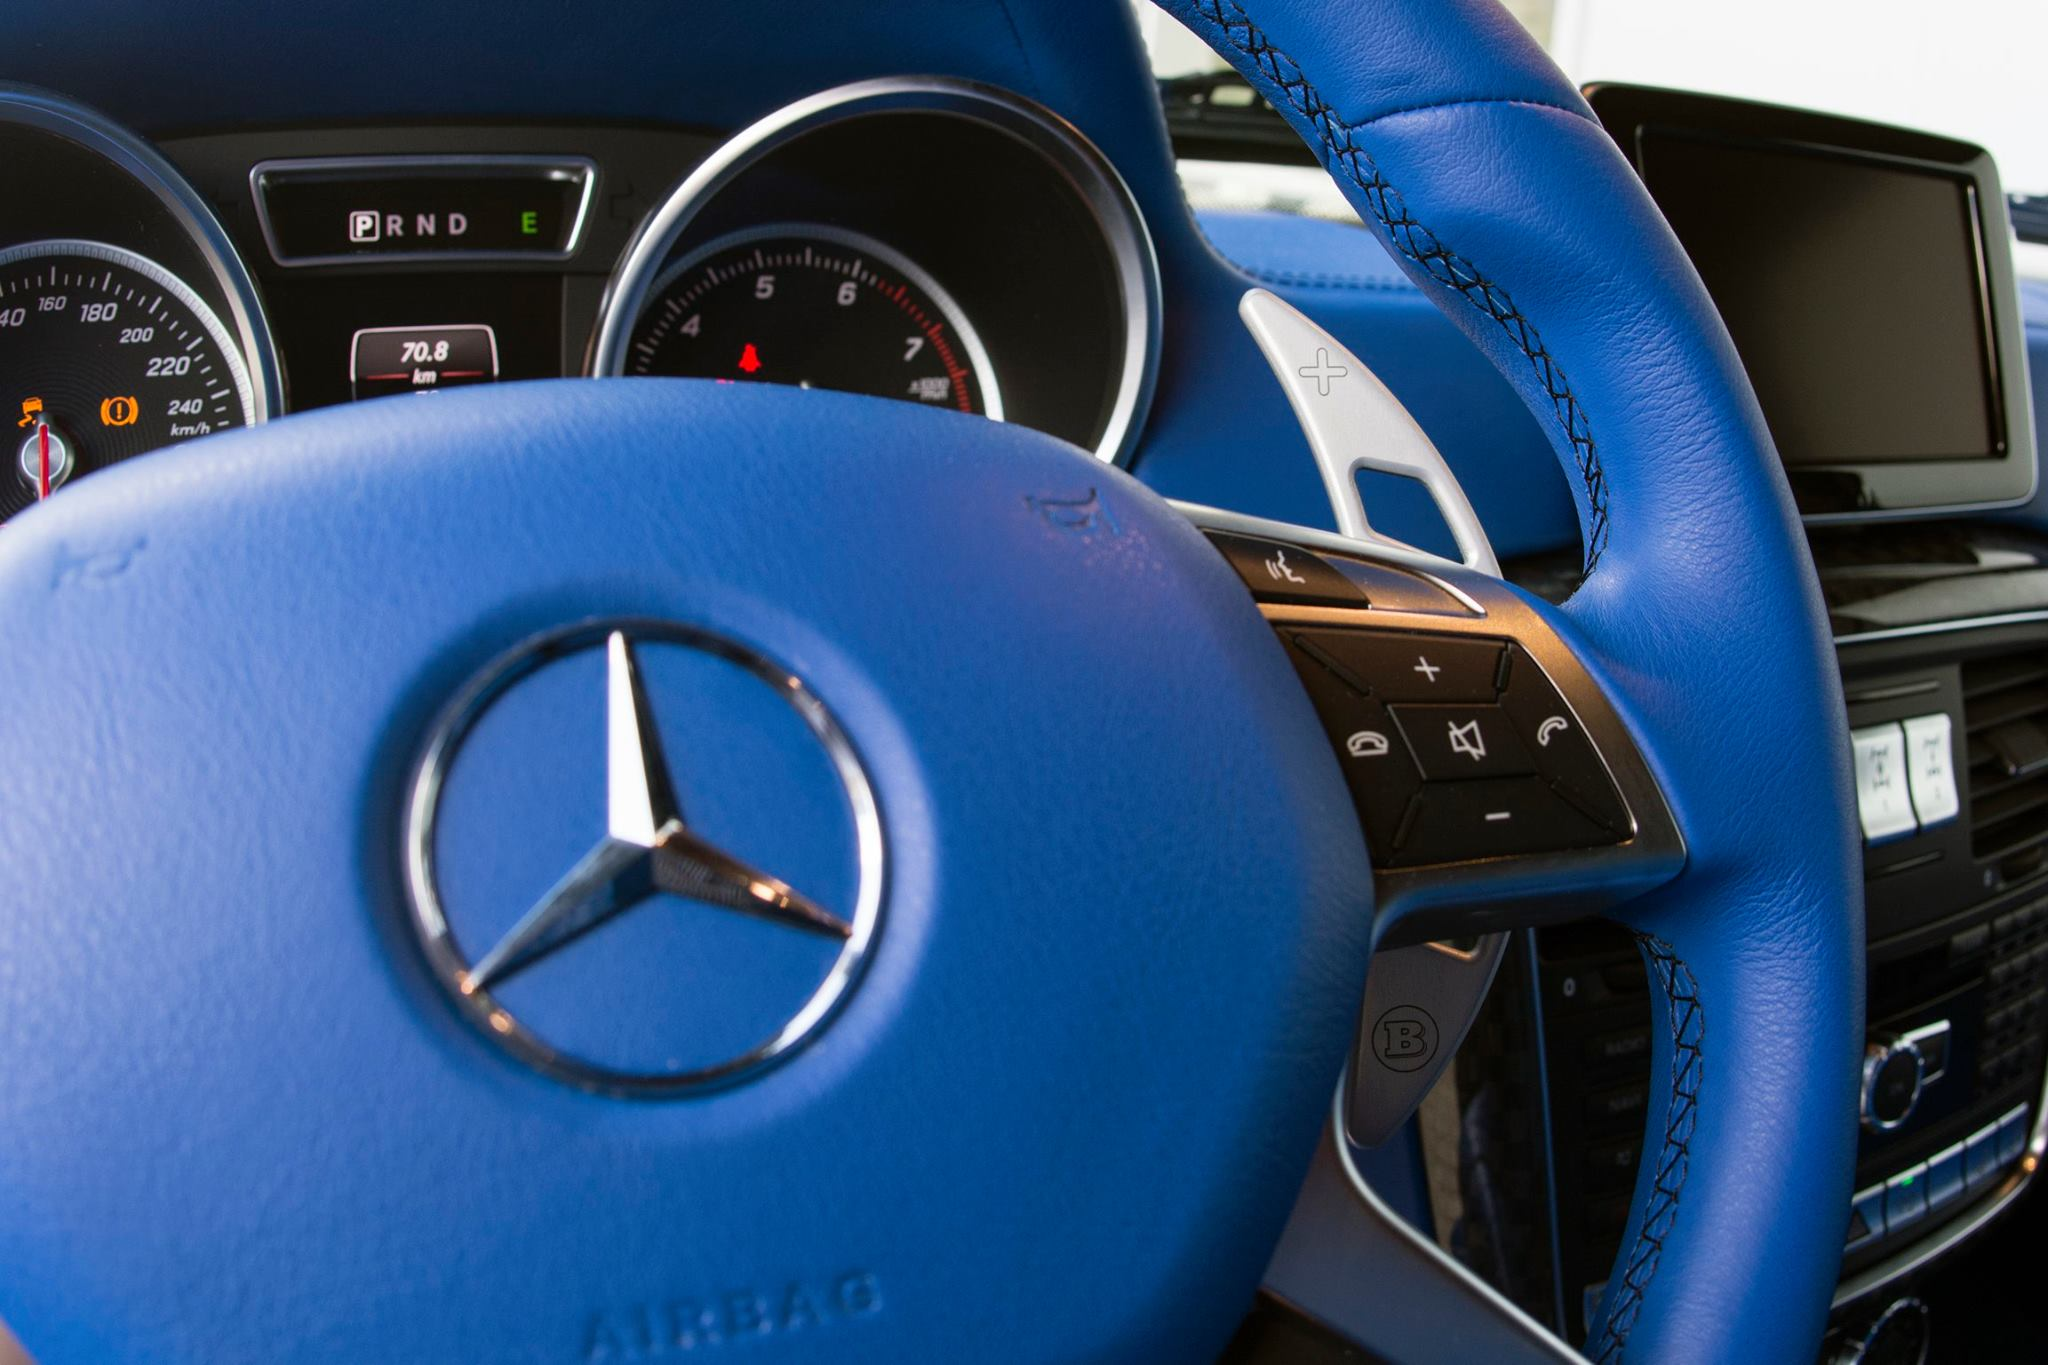 Better Way Auto >> Brabus G500 4x4 Has a Blue Leather Interior That's Nifty - autoevolution